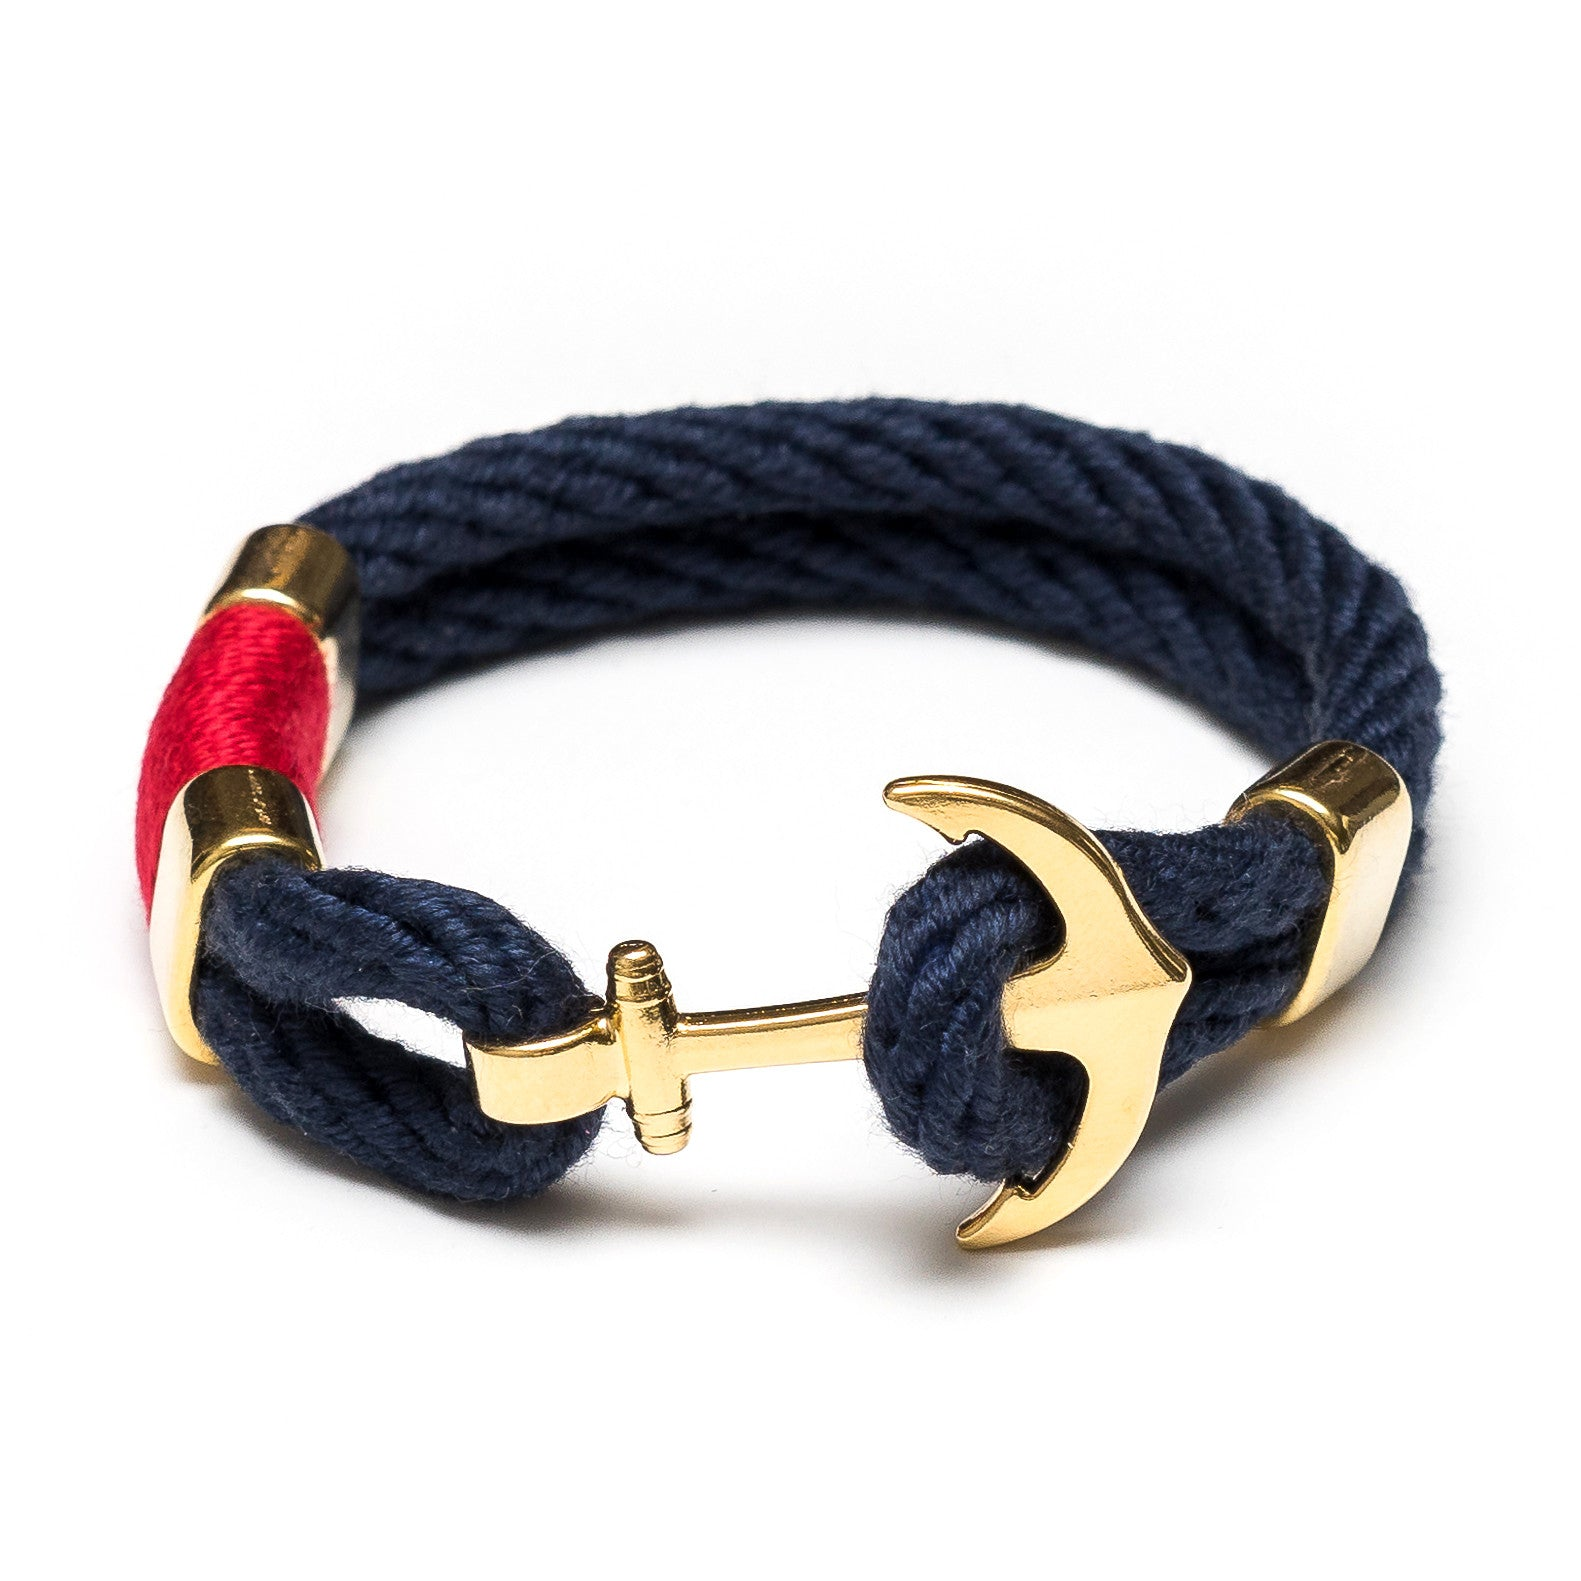 carter bracelet leather navy brushed simon stainless